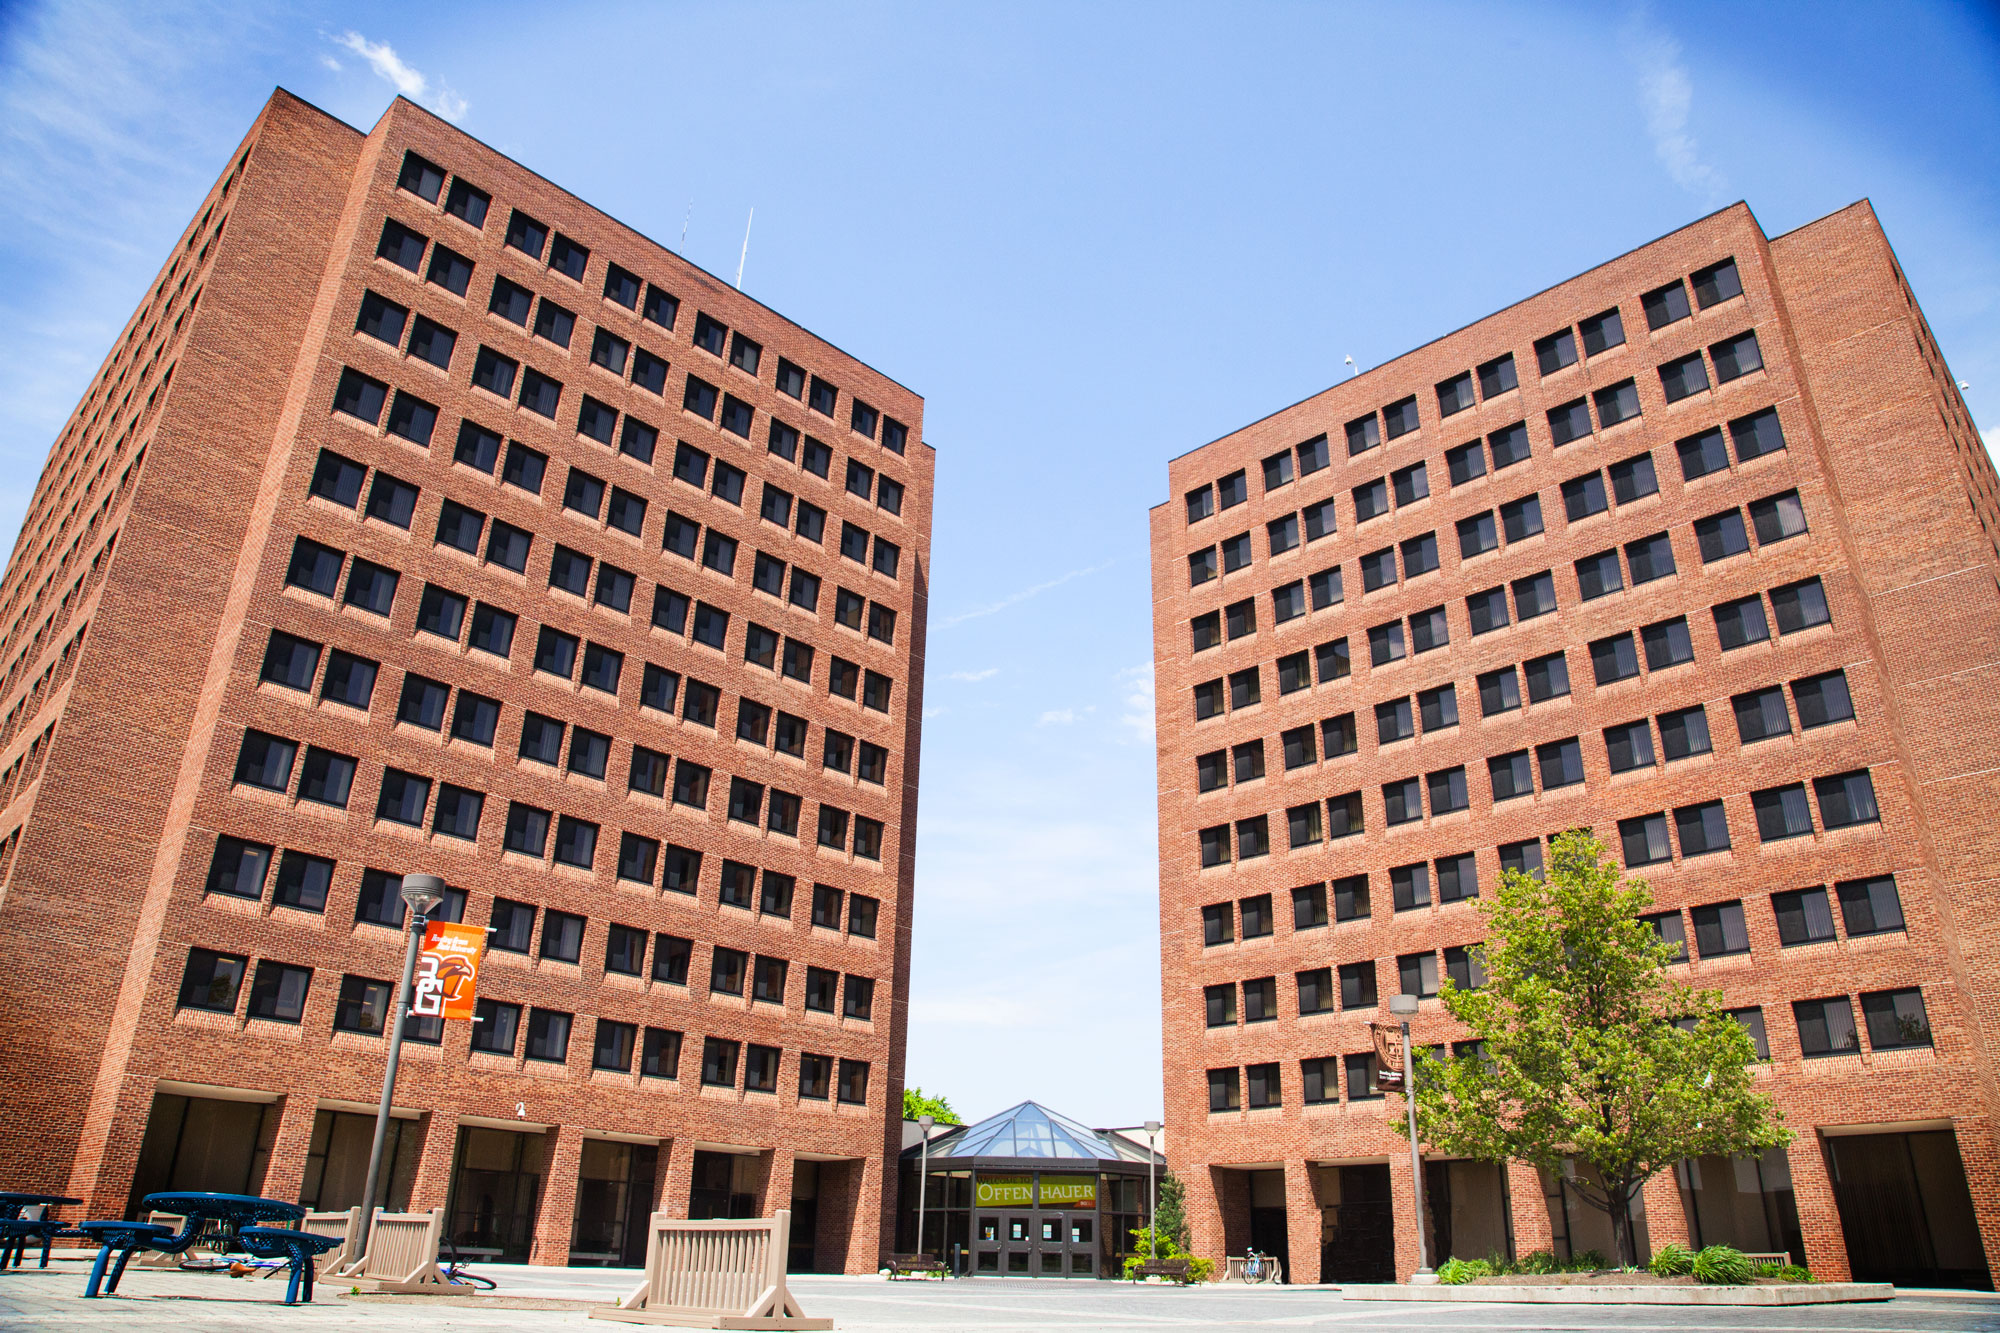 Exterior Image of Offenhauer Towers on a sunny day.